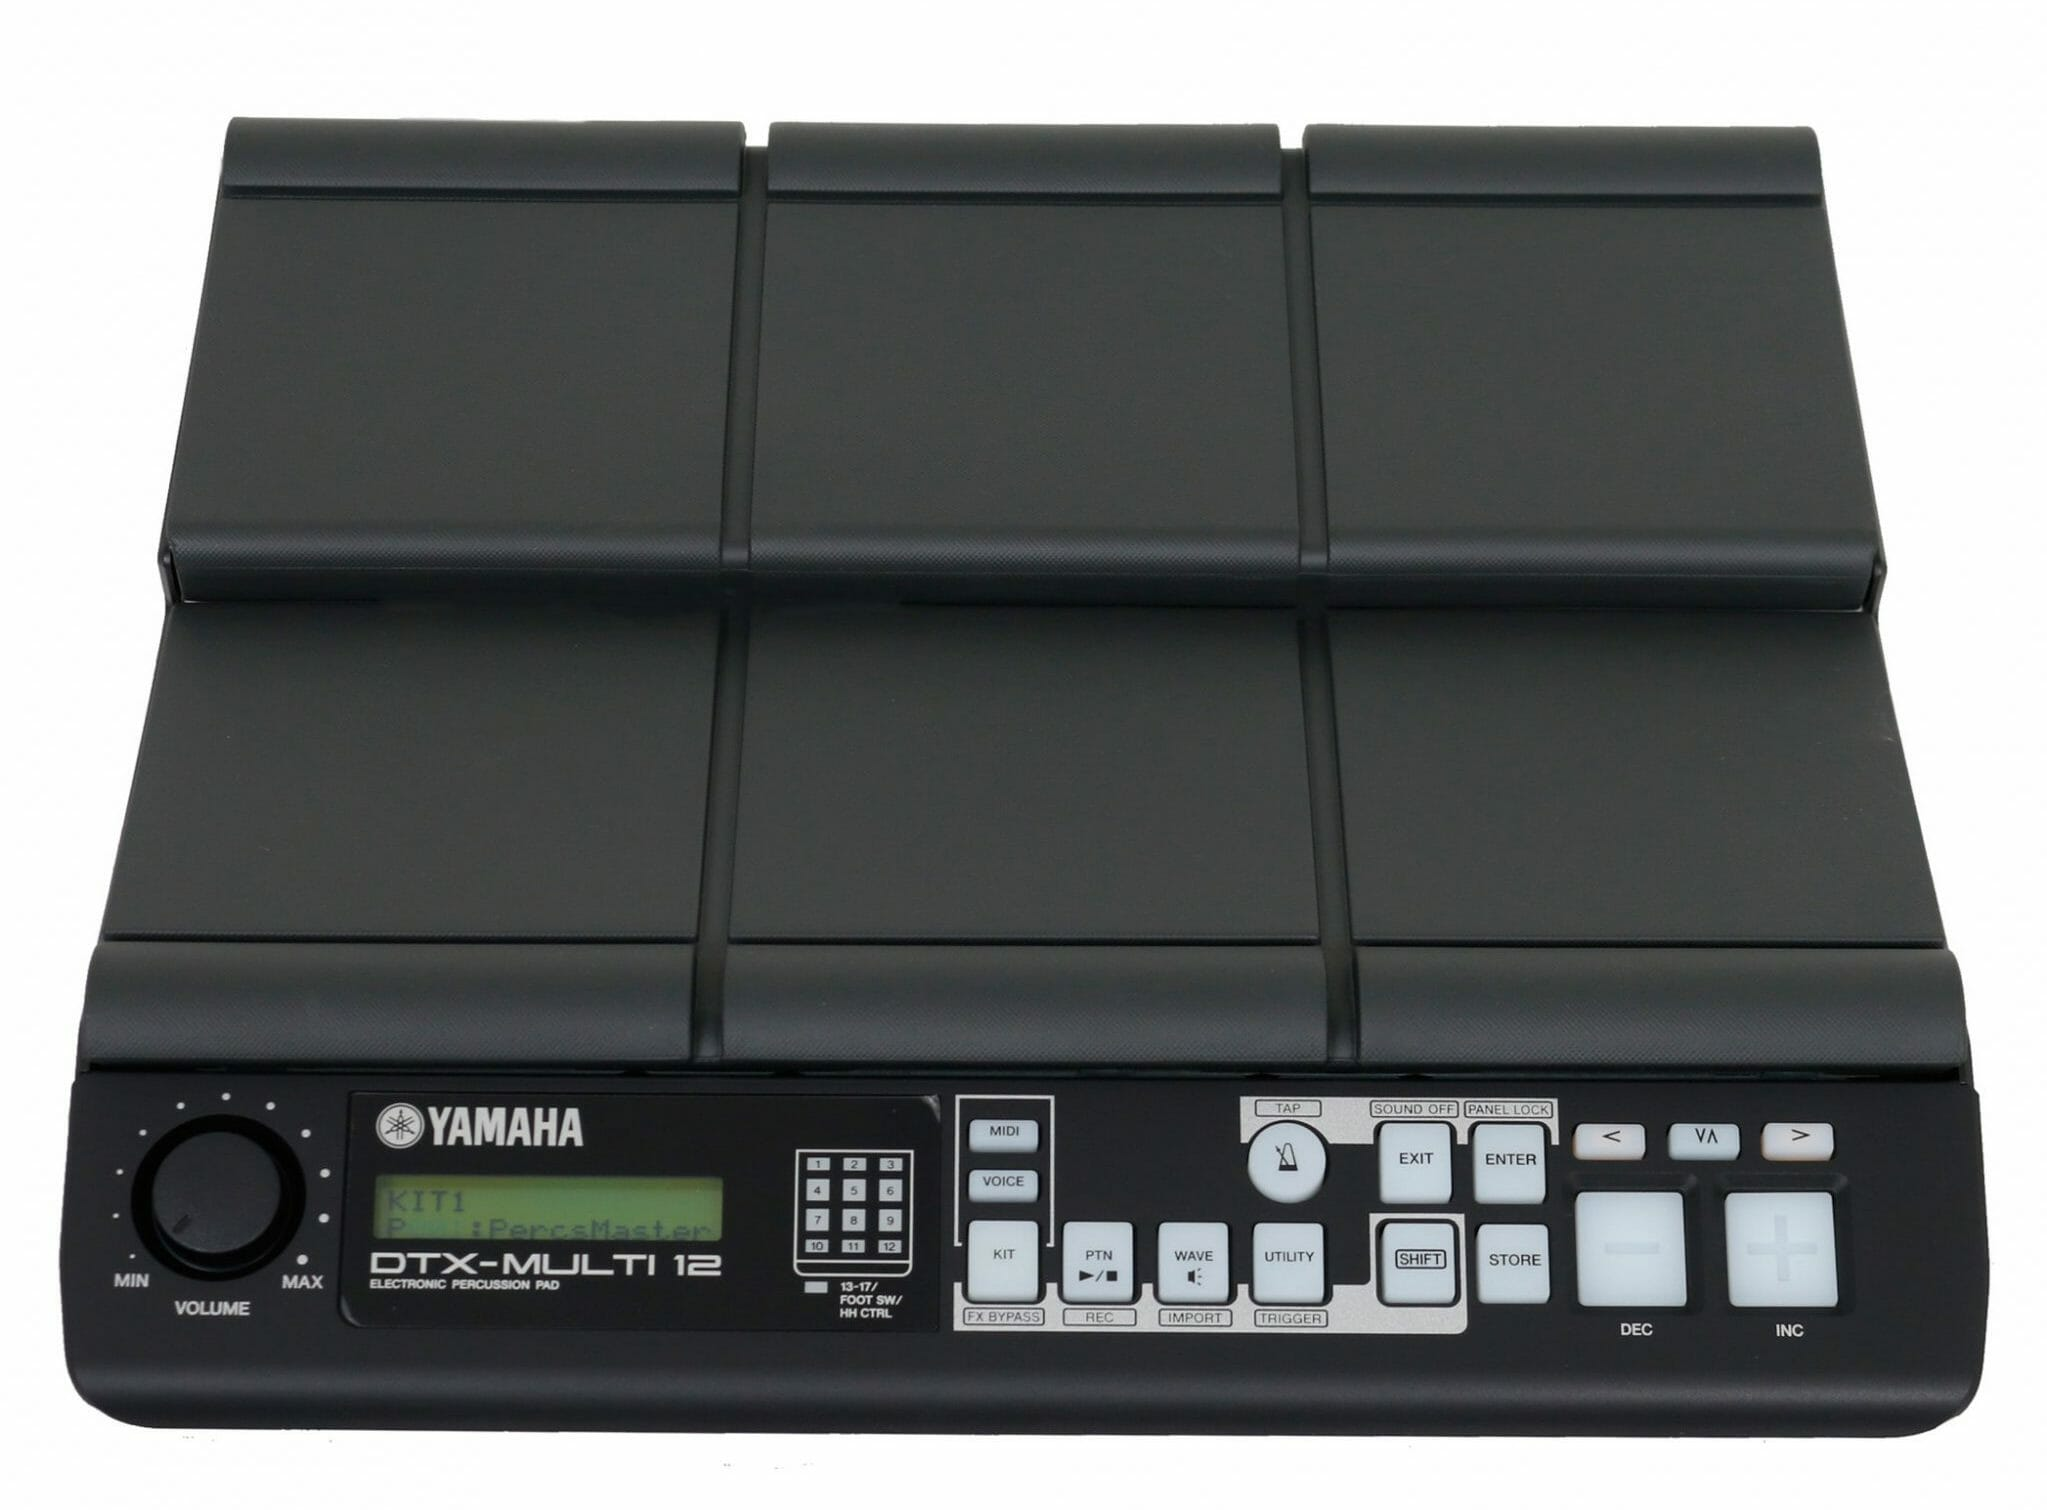 yamaha dtx multi 12 review